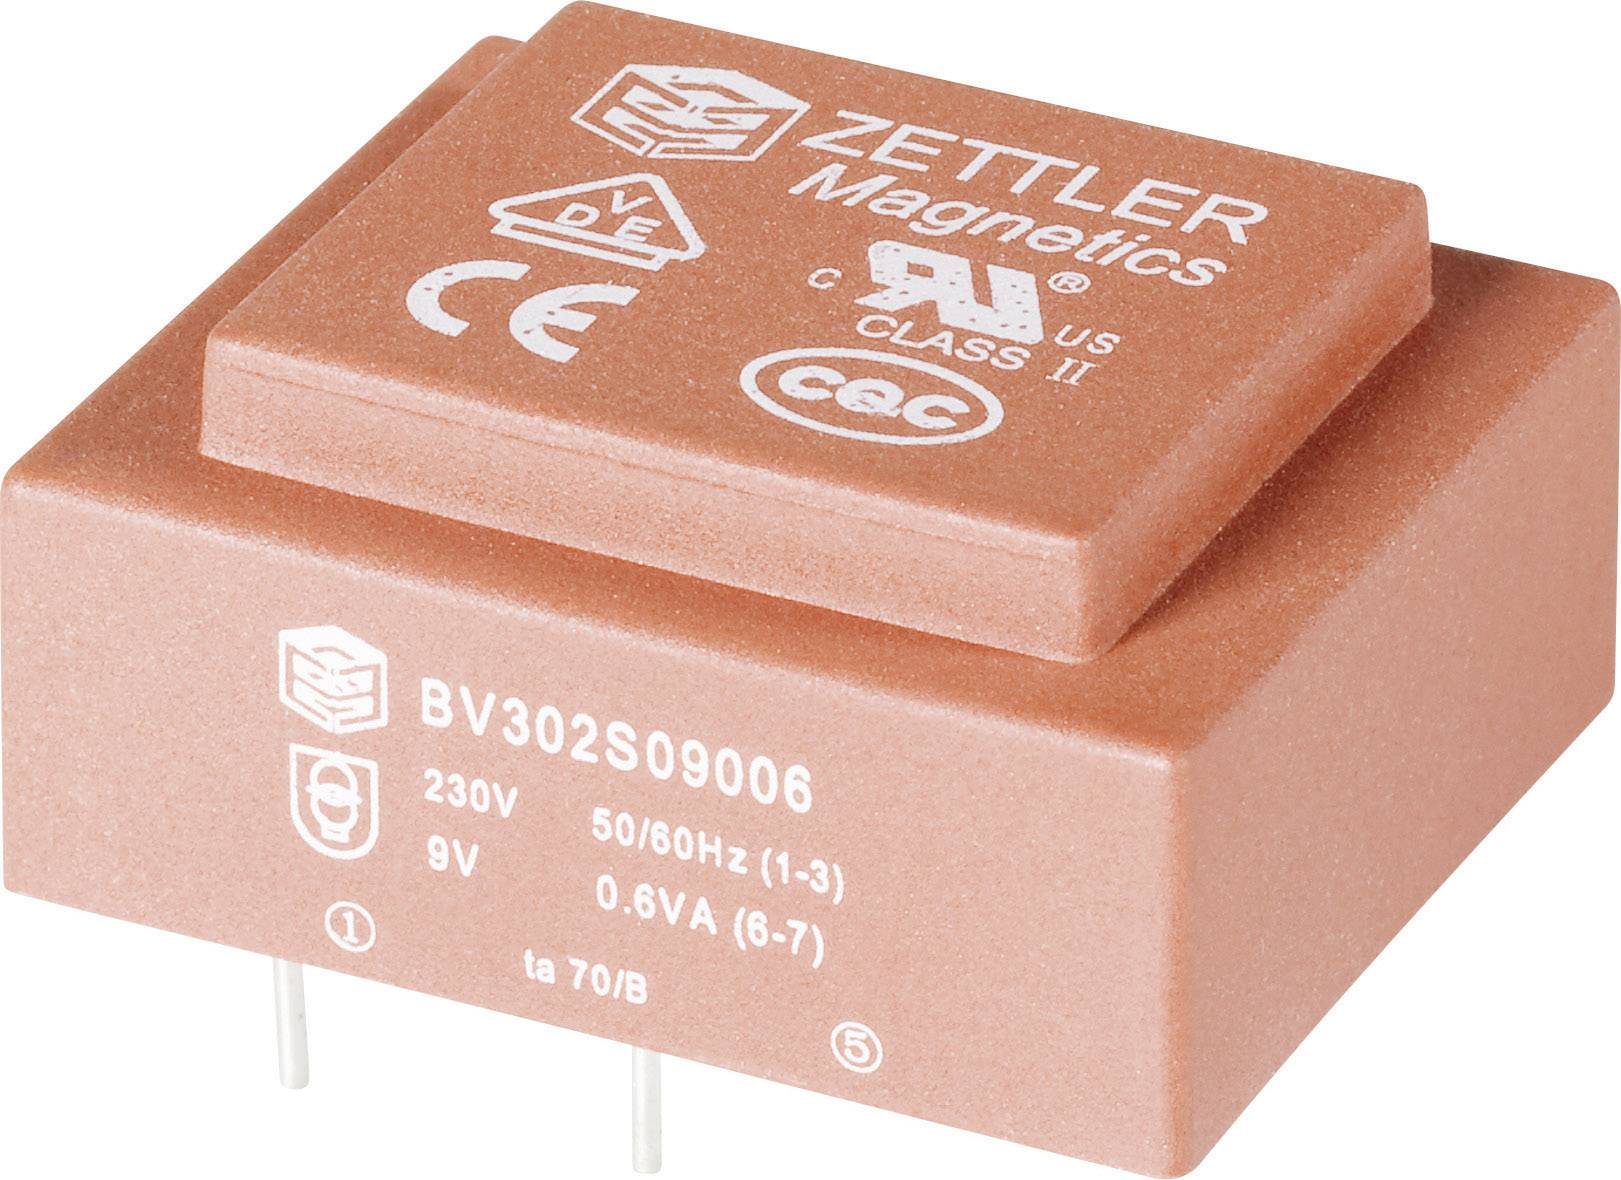 Transformátor do DPS Zettler Magnetics El30, 230 V/12 V, 50 mA, 1,5 VA